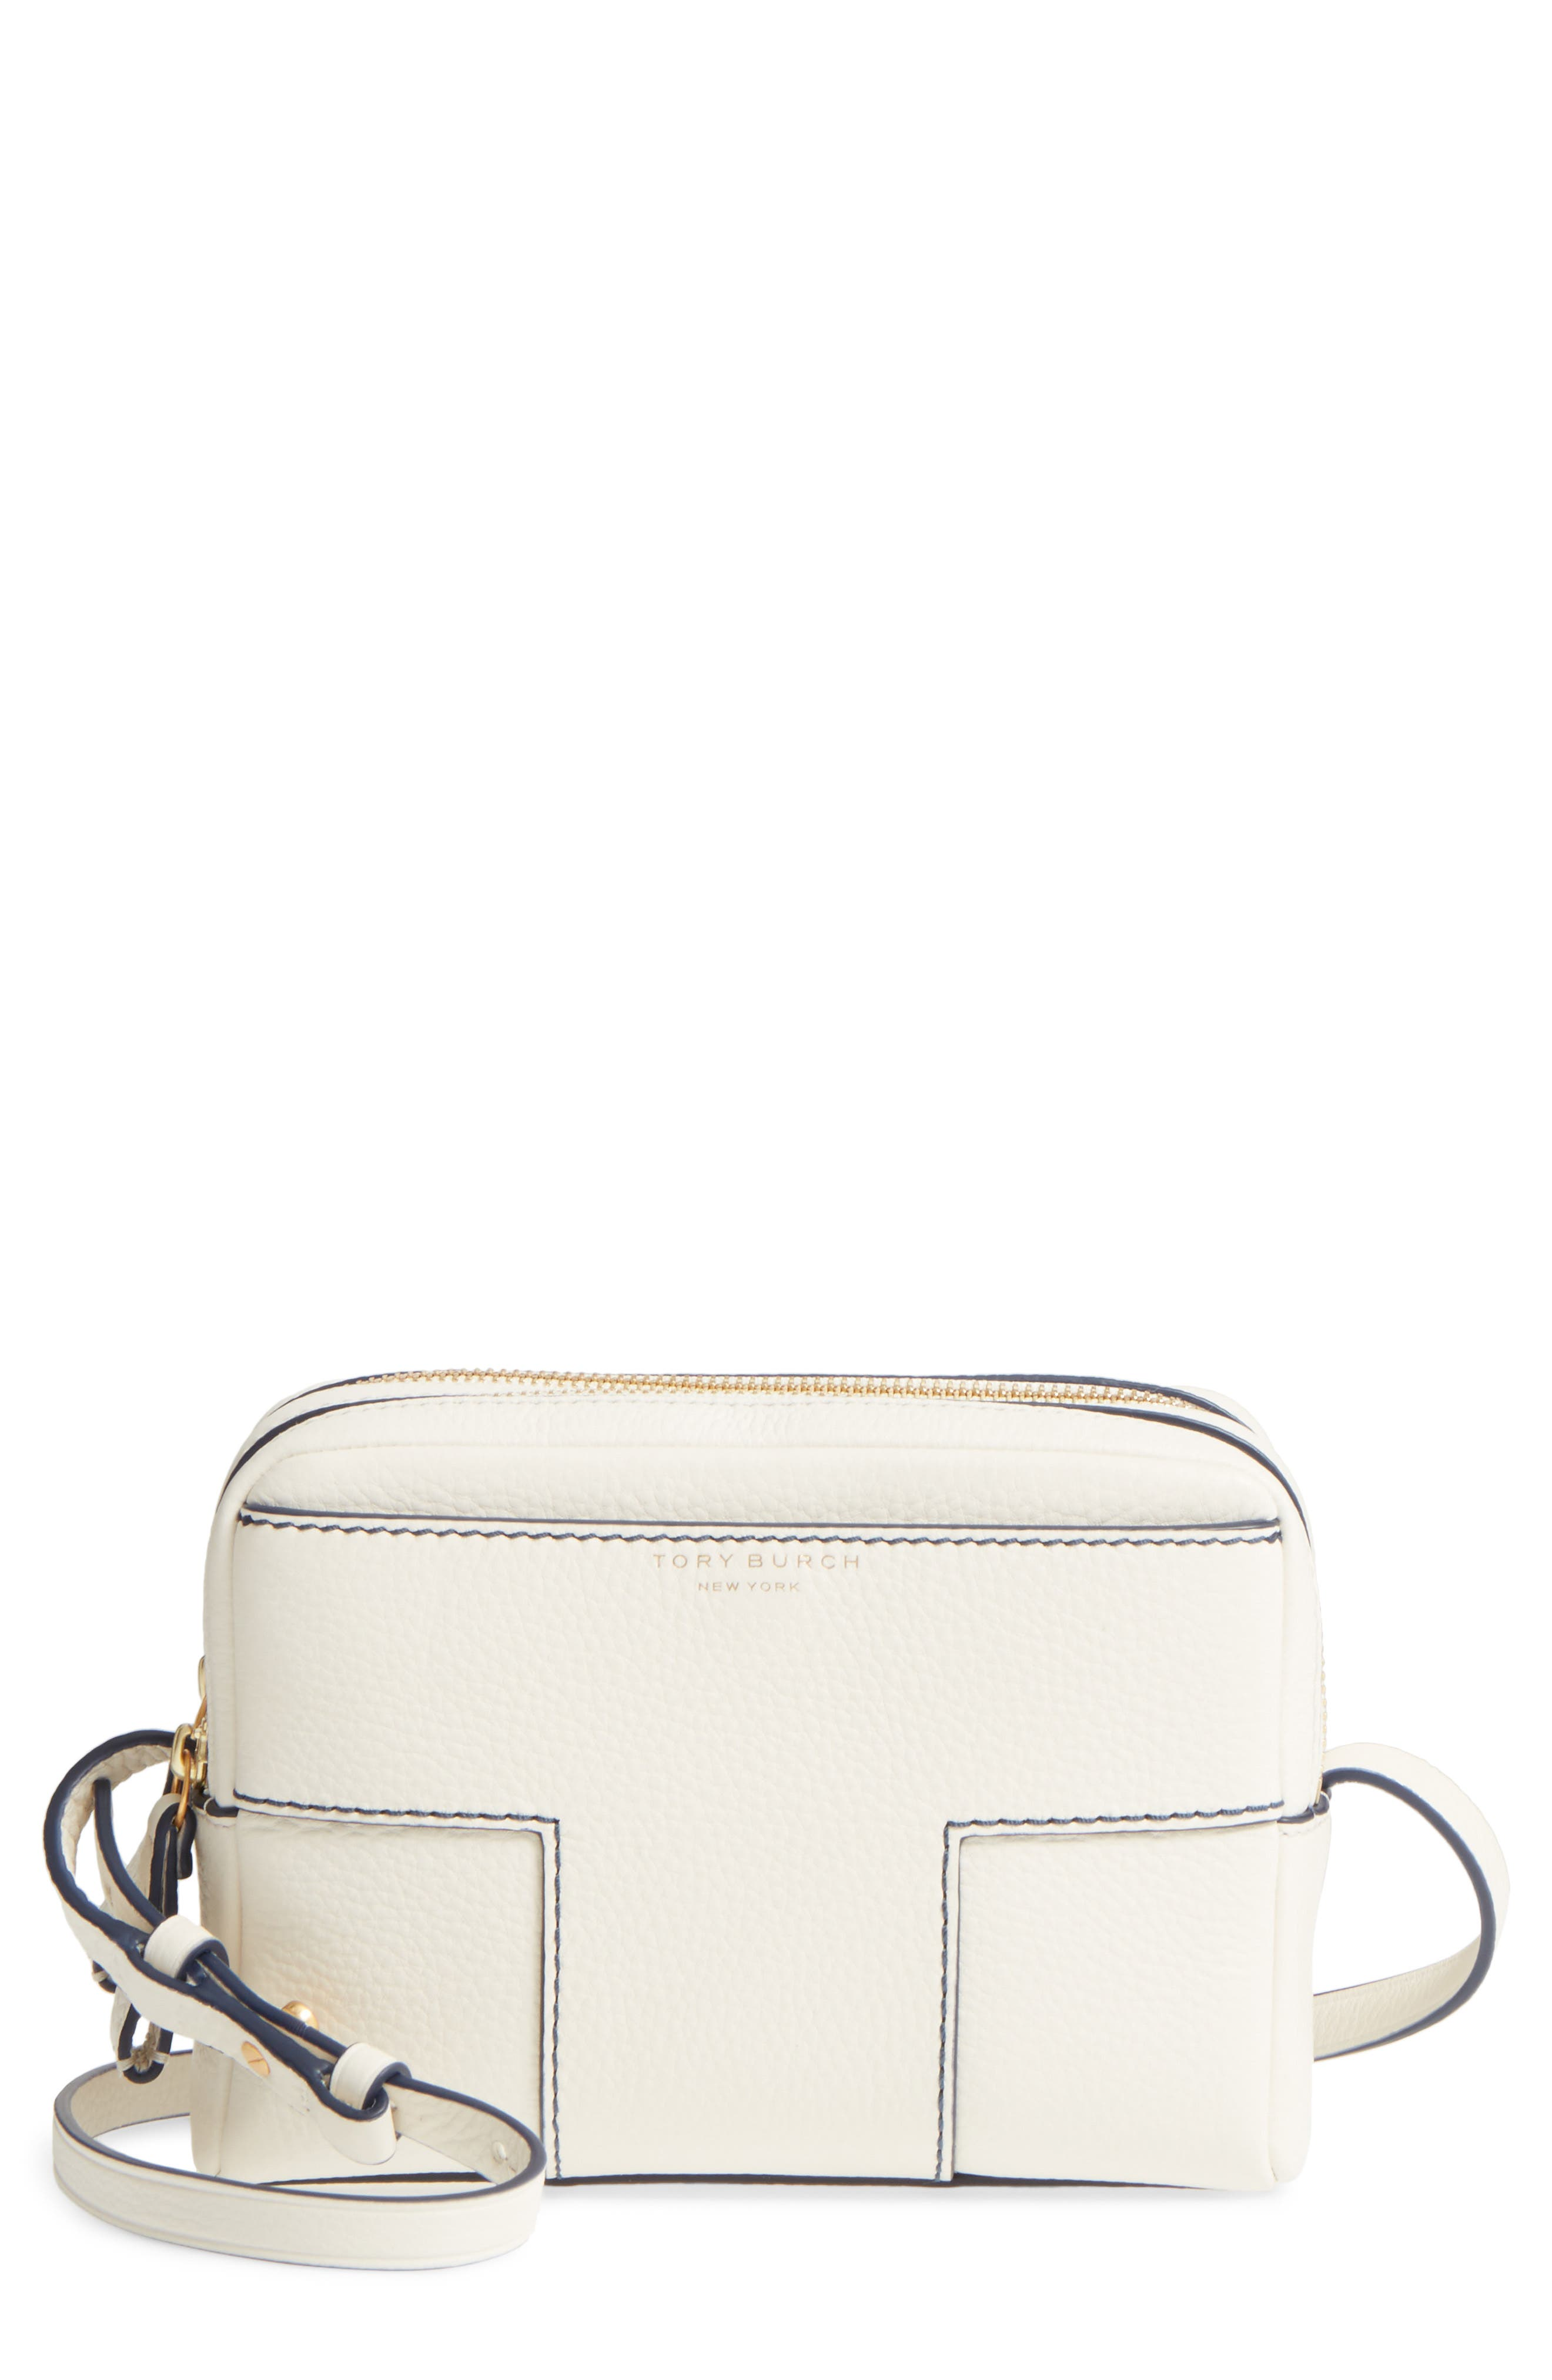 Block-T Double Zip Leather Crossbody Bag,                             Main thumbnail 1, color,                             New Ivory